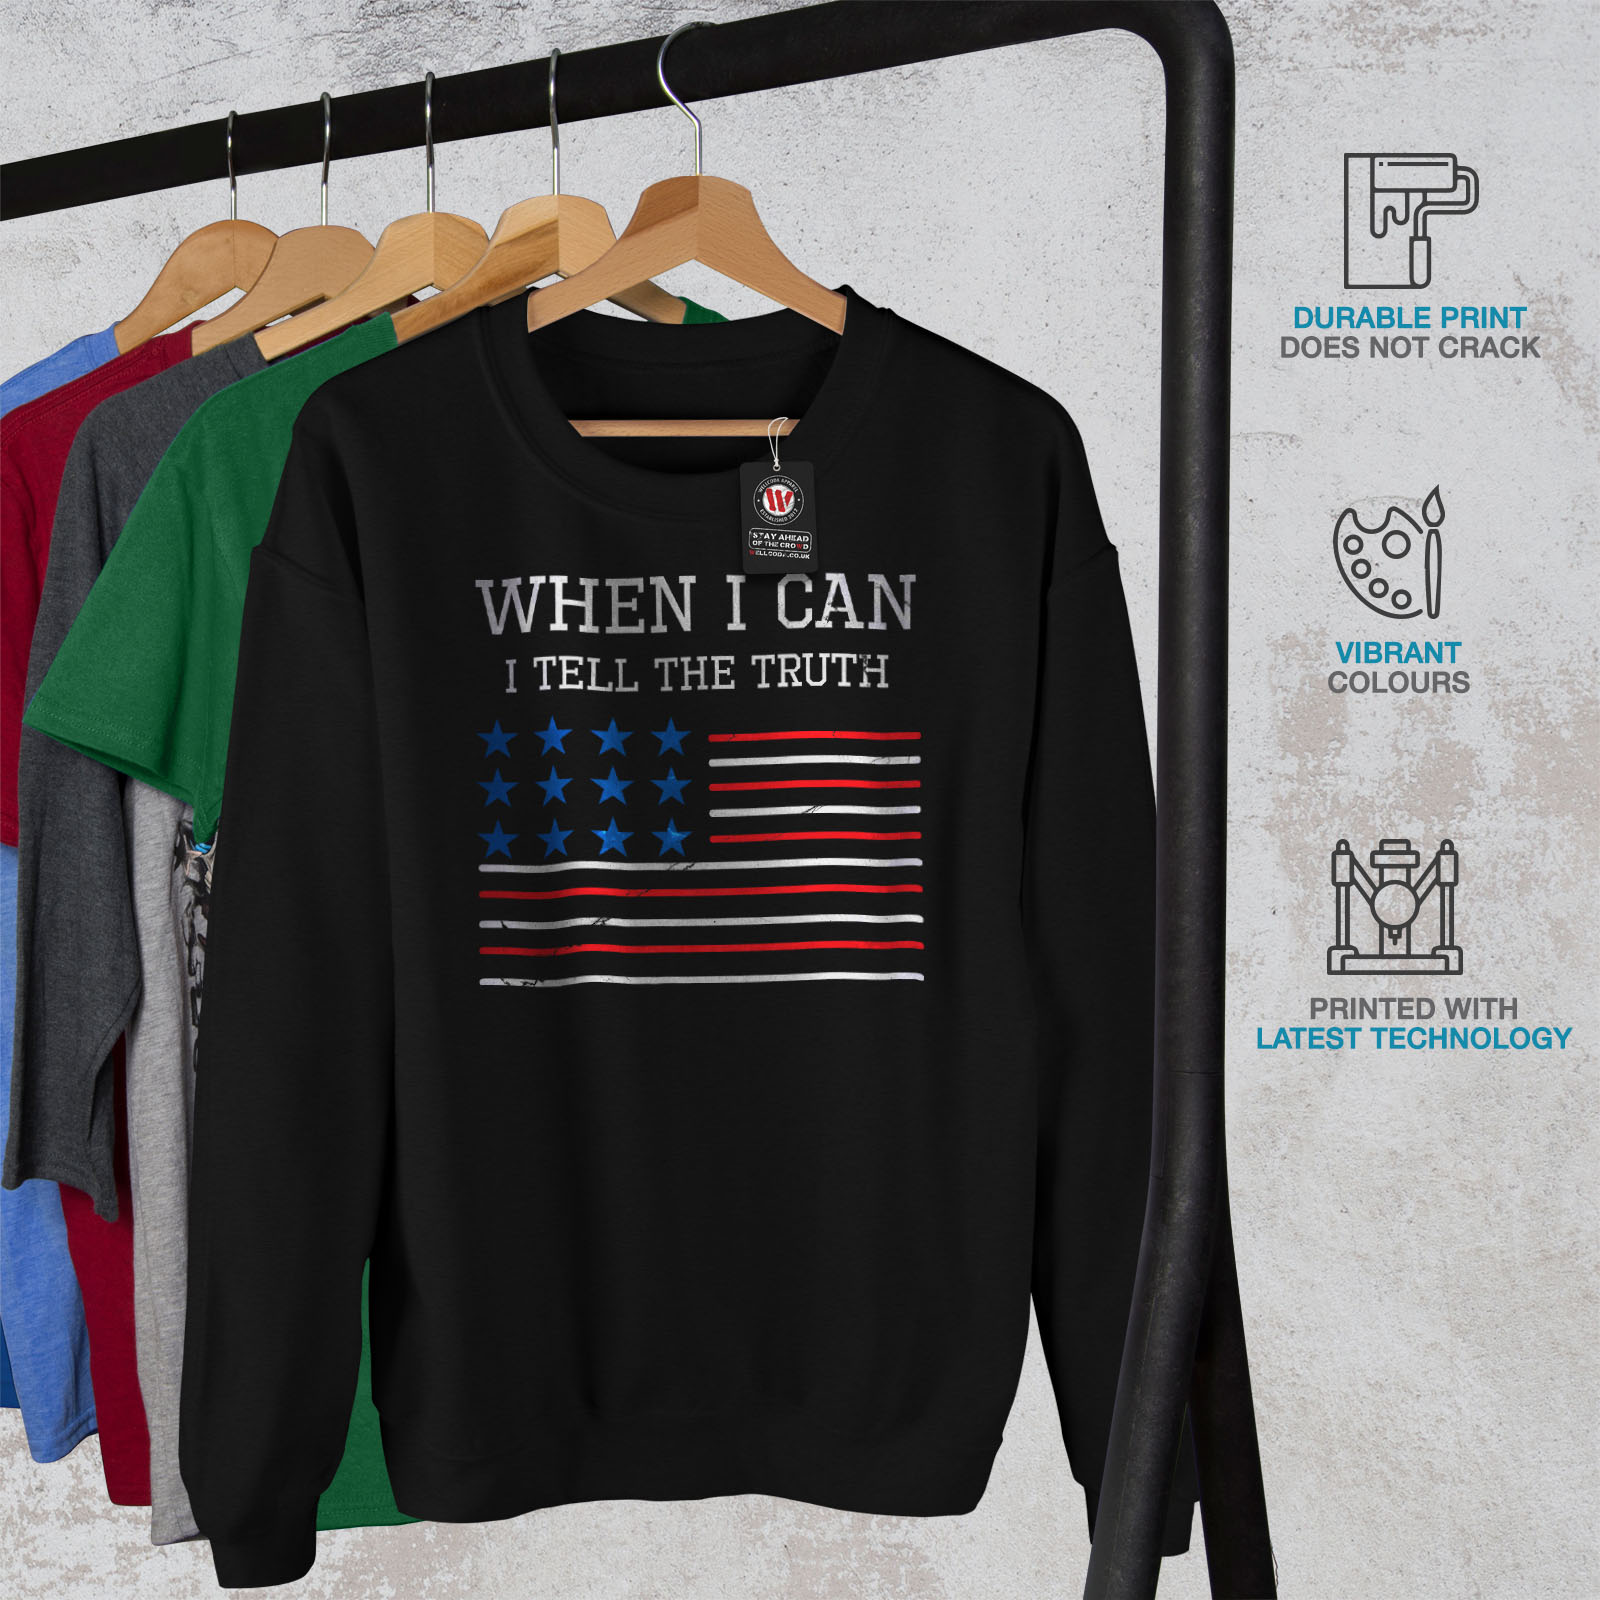 SweatshirtPull Wellcoda President Quote Truth Amᄄᆭricain Dᄄᆭcontractᄄᆭ Noir Amᄄᆭricain vwm8nON0